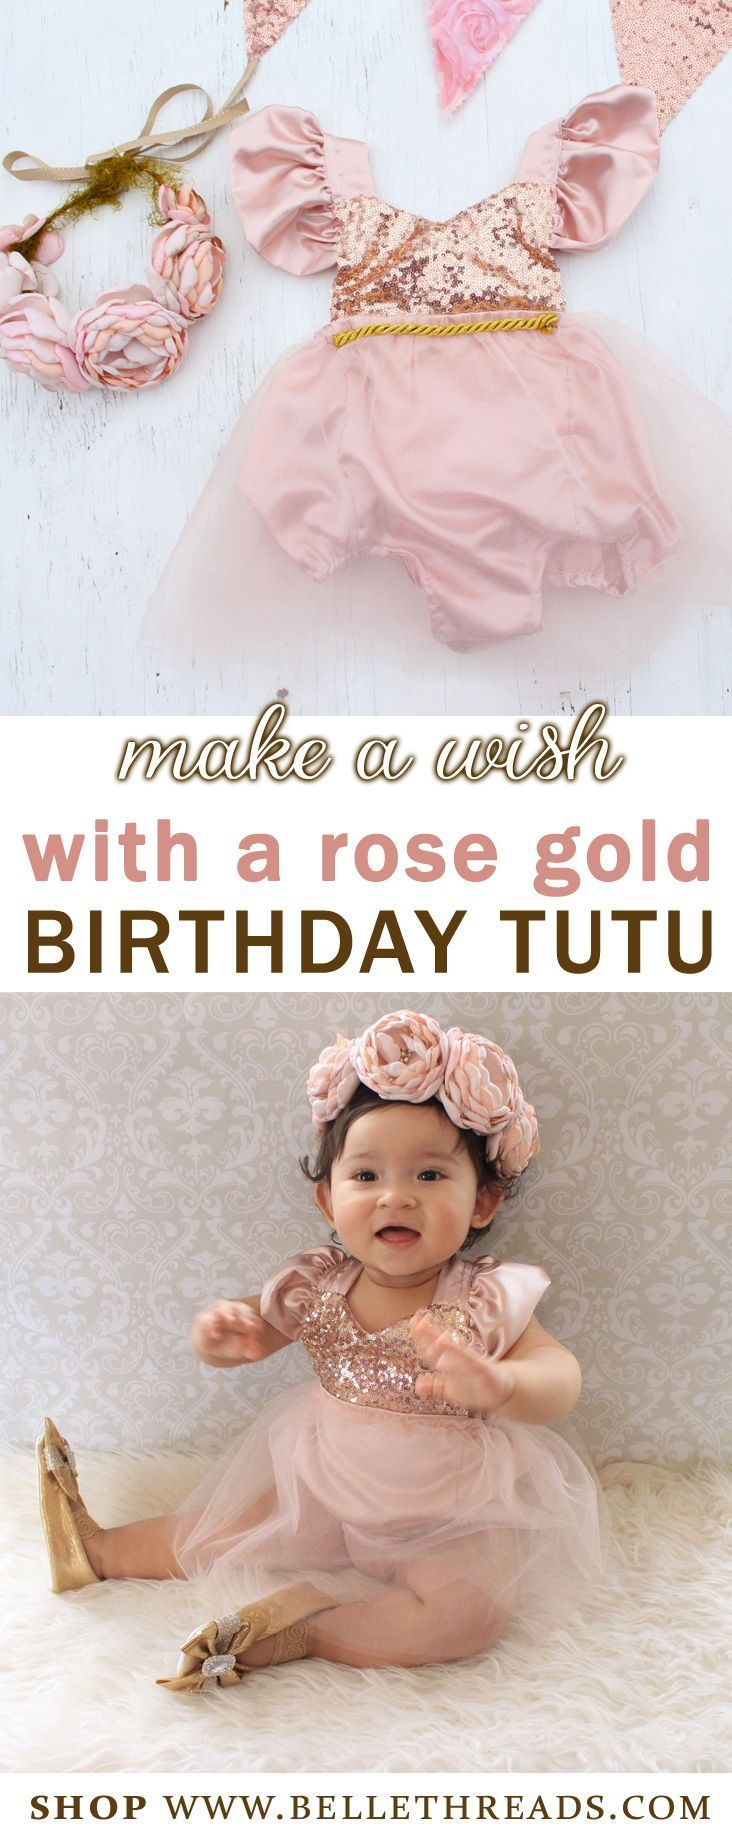 Make a Wish on your little one's birthday with your girl in a rose gold birthday tutu. Handmade by Belle Threads, it's a must have for girl birthdays or celebrations. Features a beautiful Full Tutu with sequin bodice and satin flutter sleeves. The sequin top is a halter. Shop www.bellethreads.com #birthdayparty #rosegold #babygirldress #birthdaygirl #tutu #tutudresses